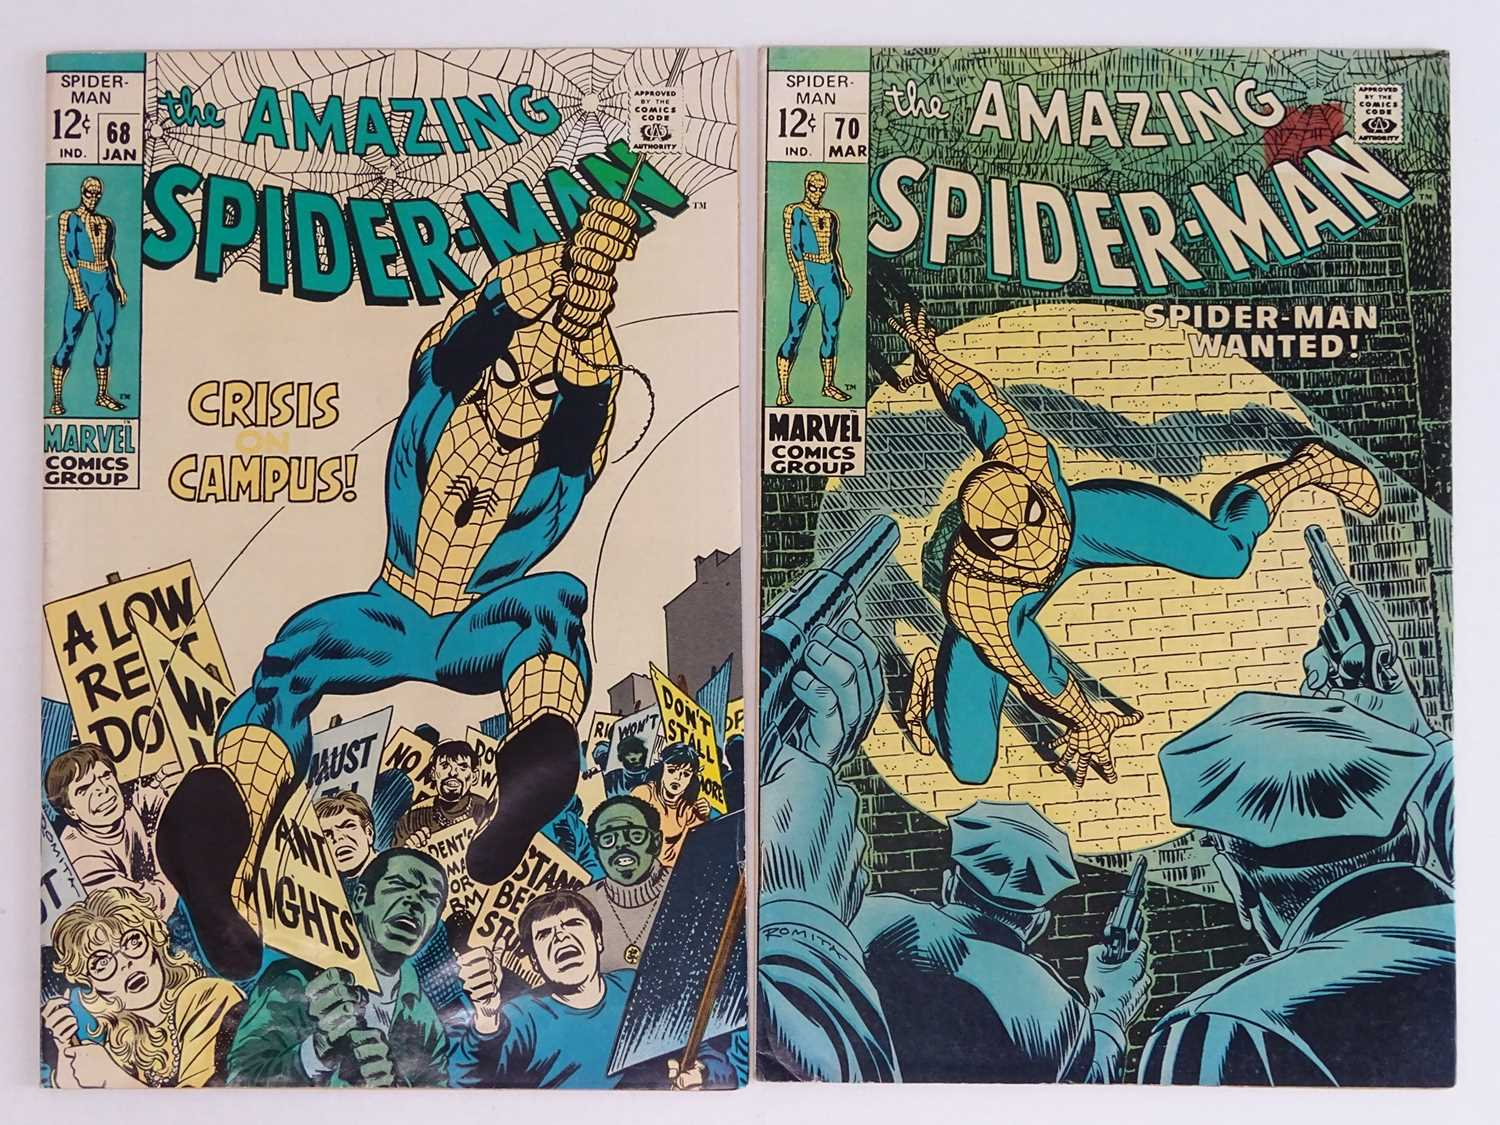 AMAZING SPIDER-MAN #68 & 70 - (2 in Lot) - (1969 - MARVEL) - Includes Kingpin appearance + 'Clay